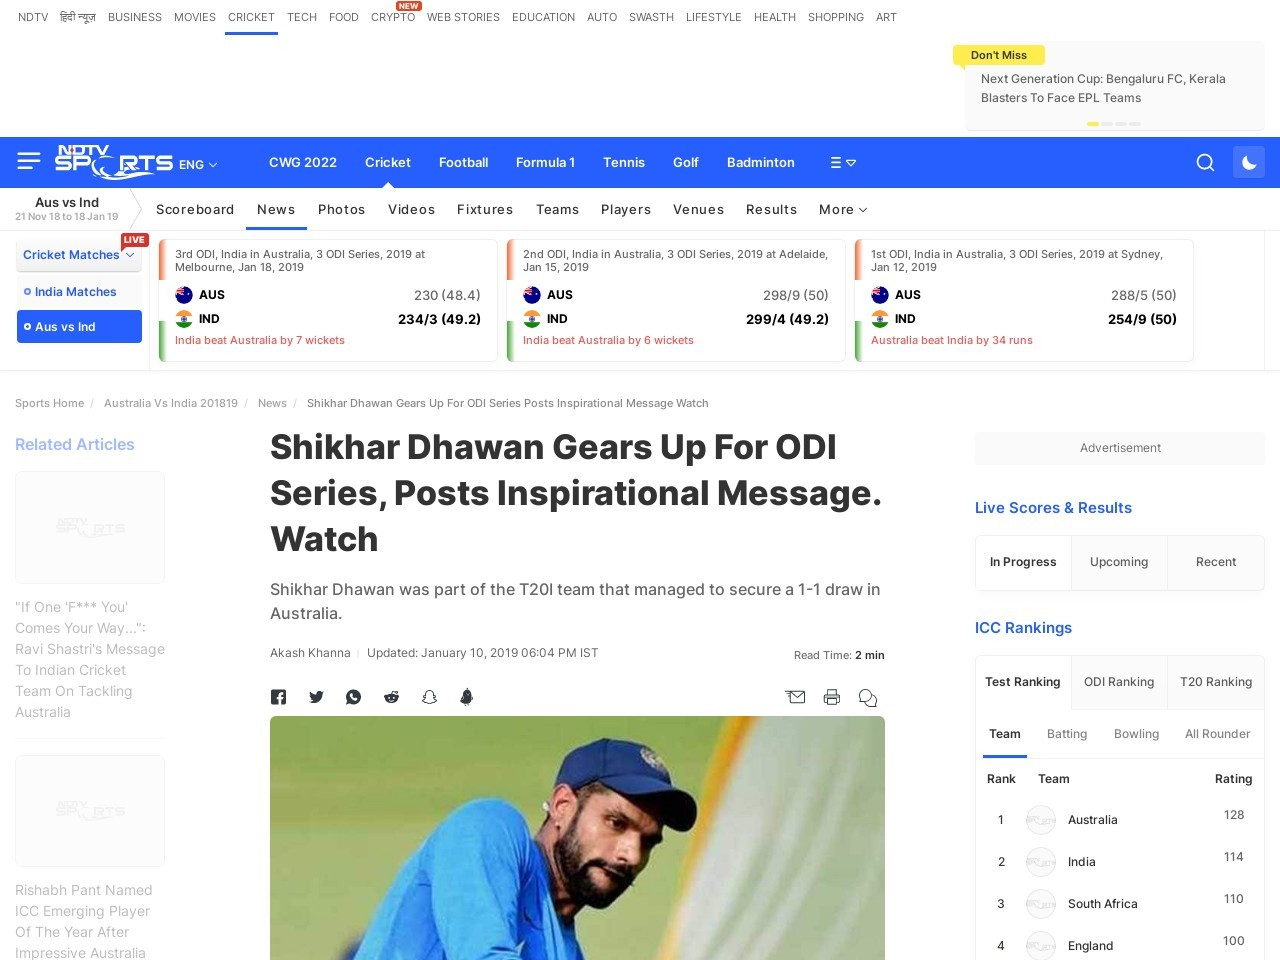 Shikhar Dhawan Gears Up For ODI Series, Posts Inspirational Message…